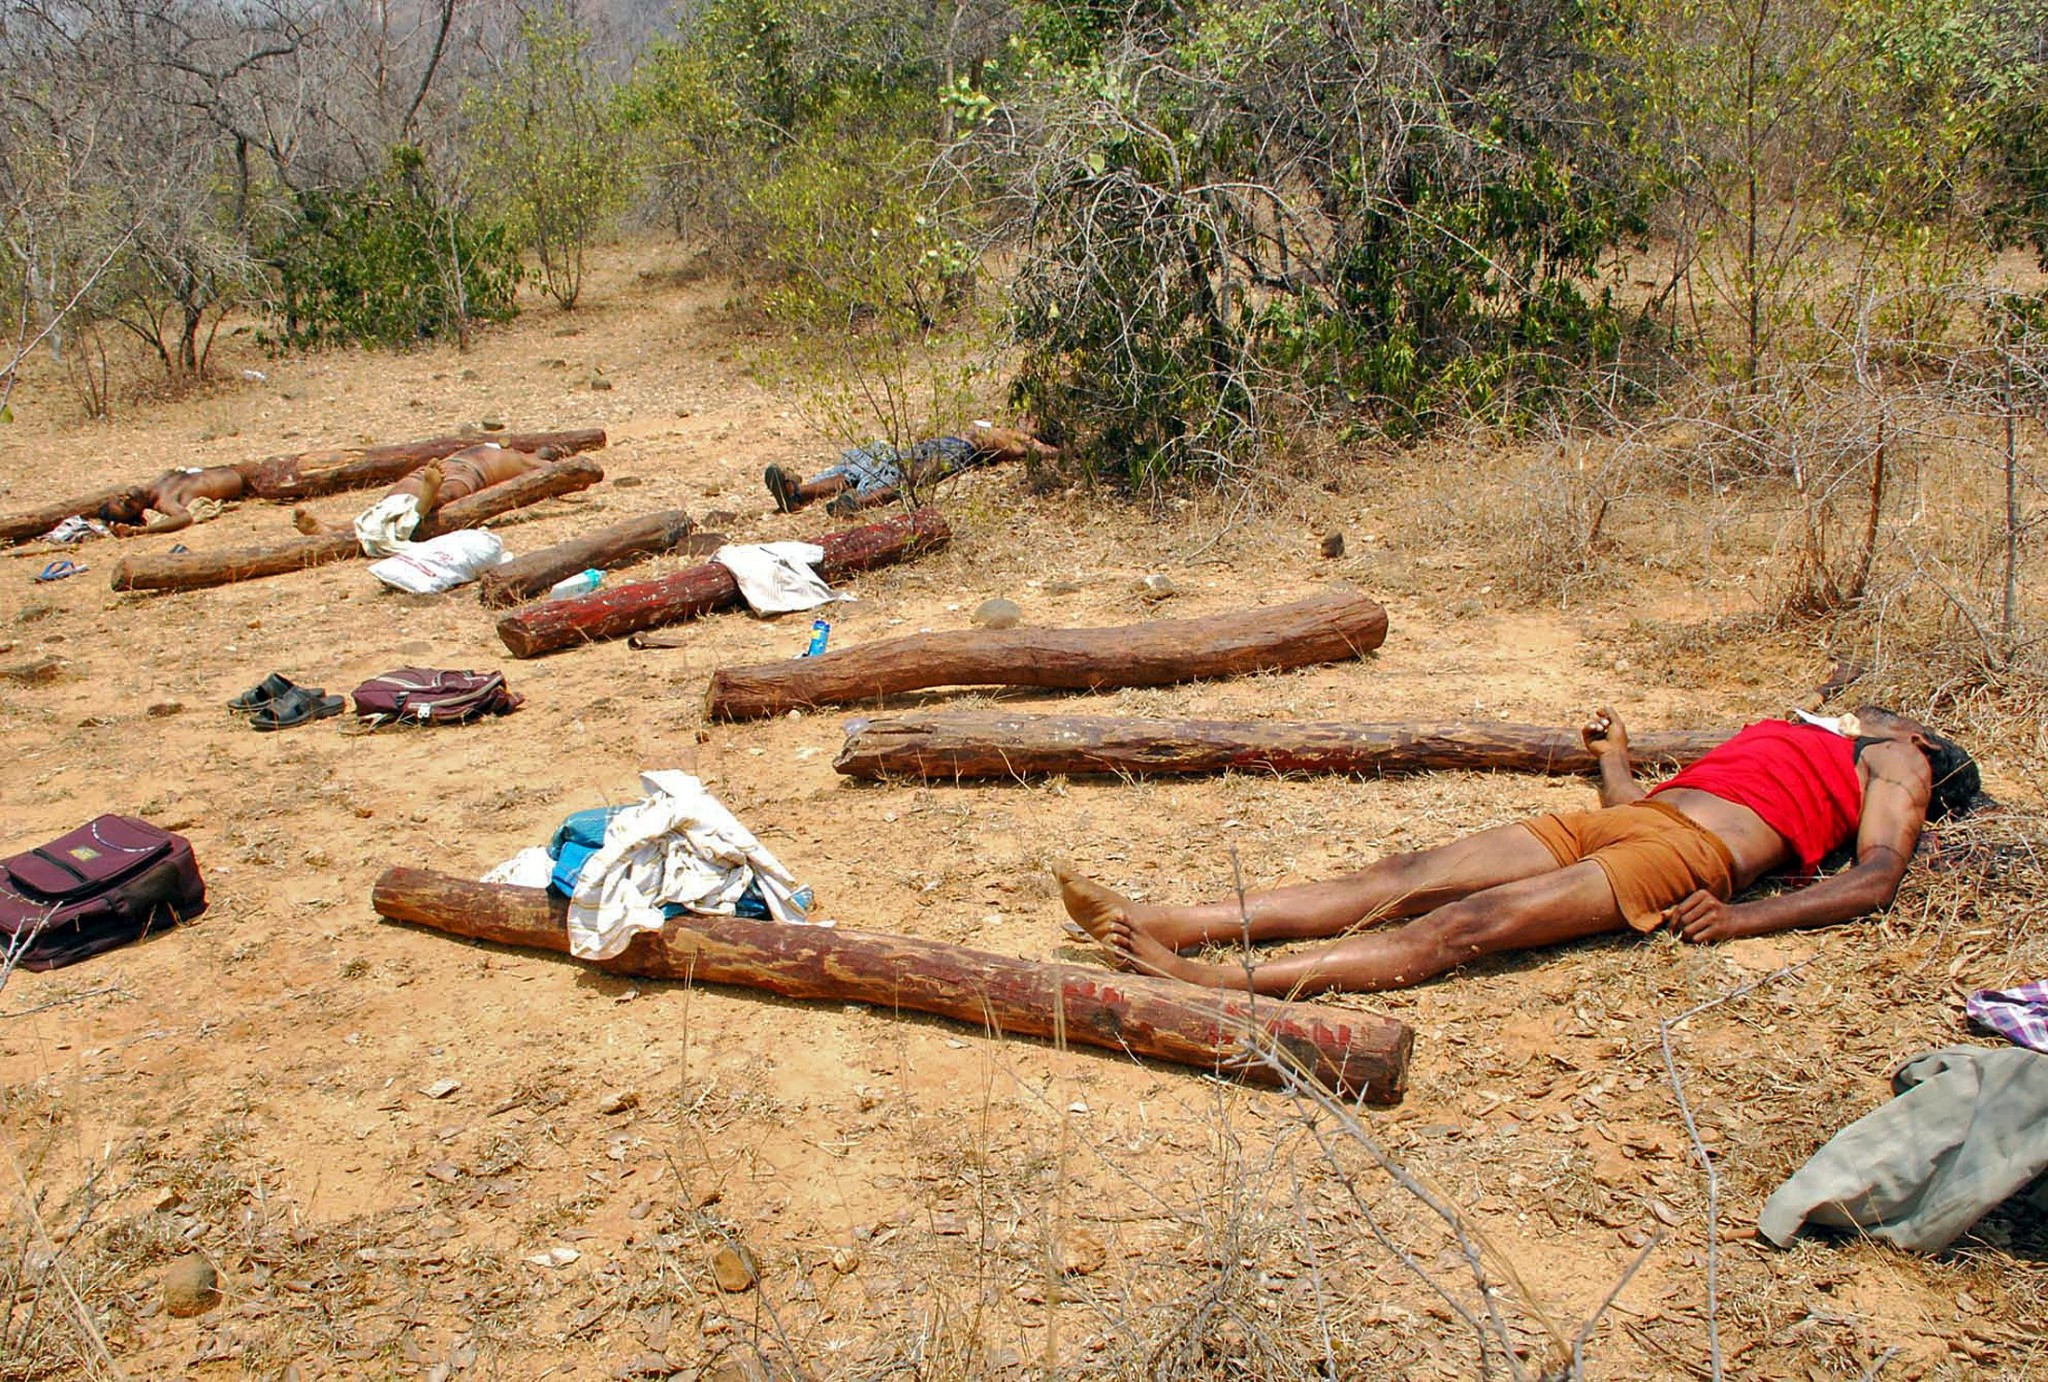 Bodies of people, who Indian police claim are suspected sandalwood smugglers killed during an operation by Indian security personnel, lie in the forest area of Chitoor district